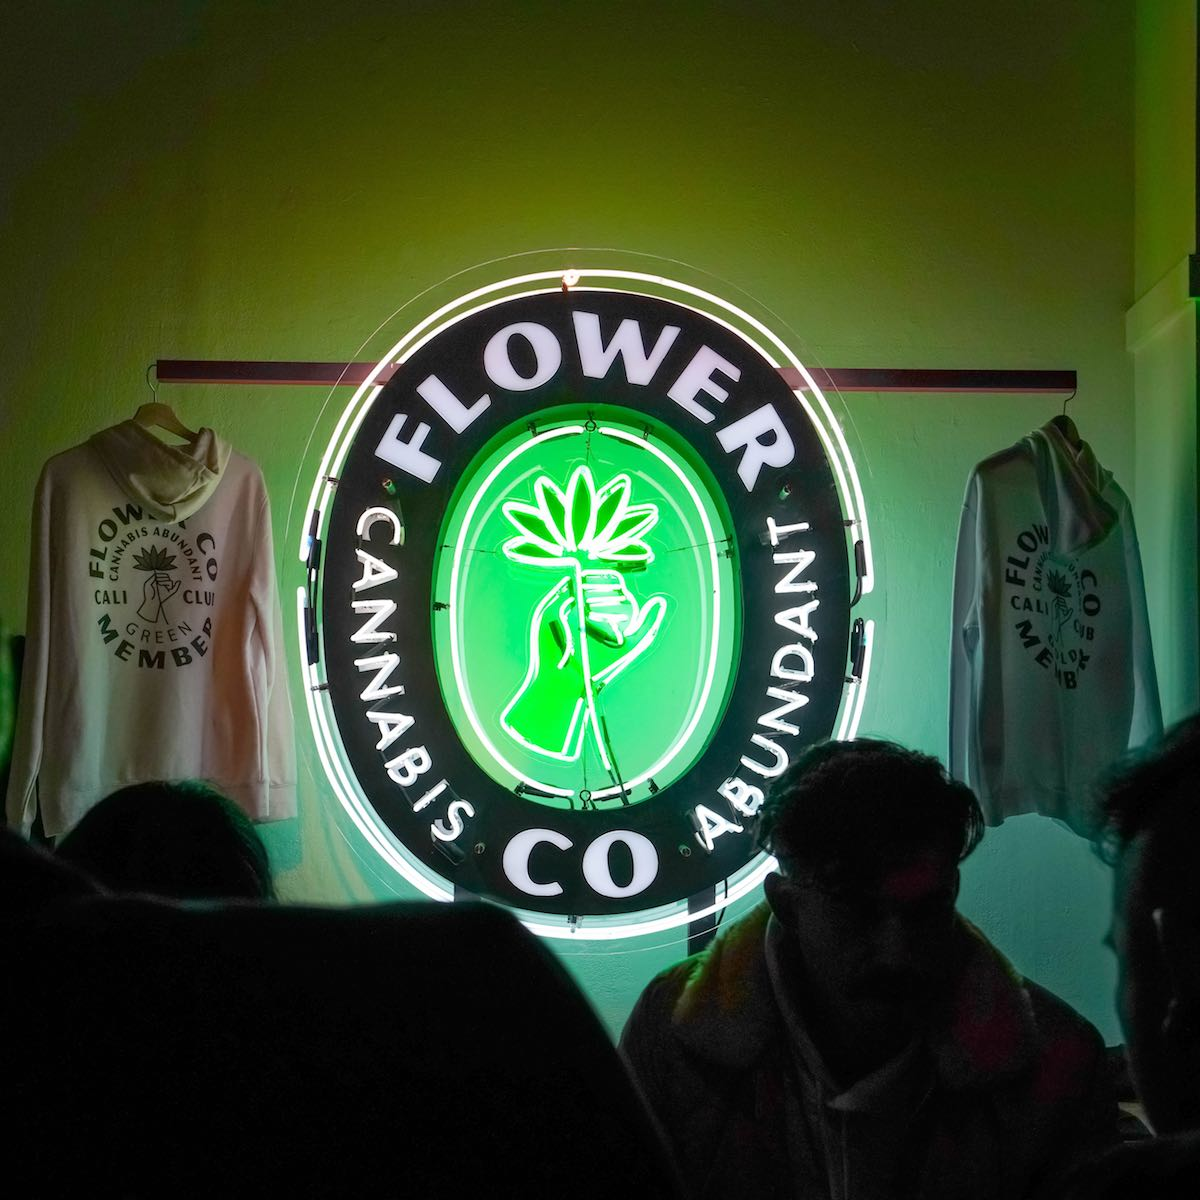 FLOWER CO. events are popping up in California. (Courtesy FLOWER CO.)